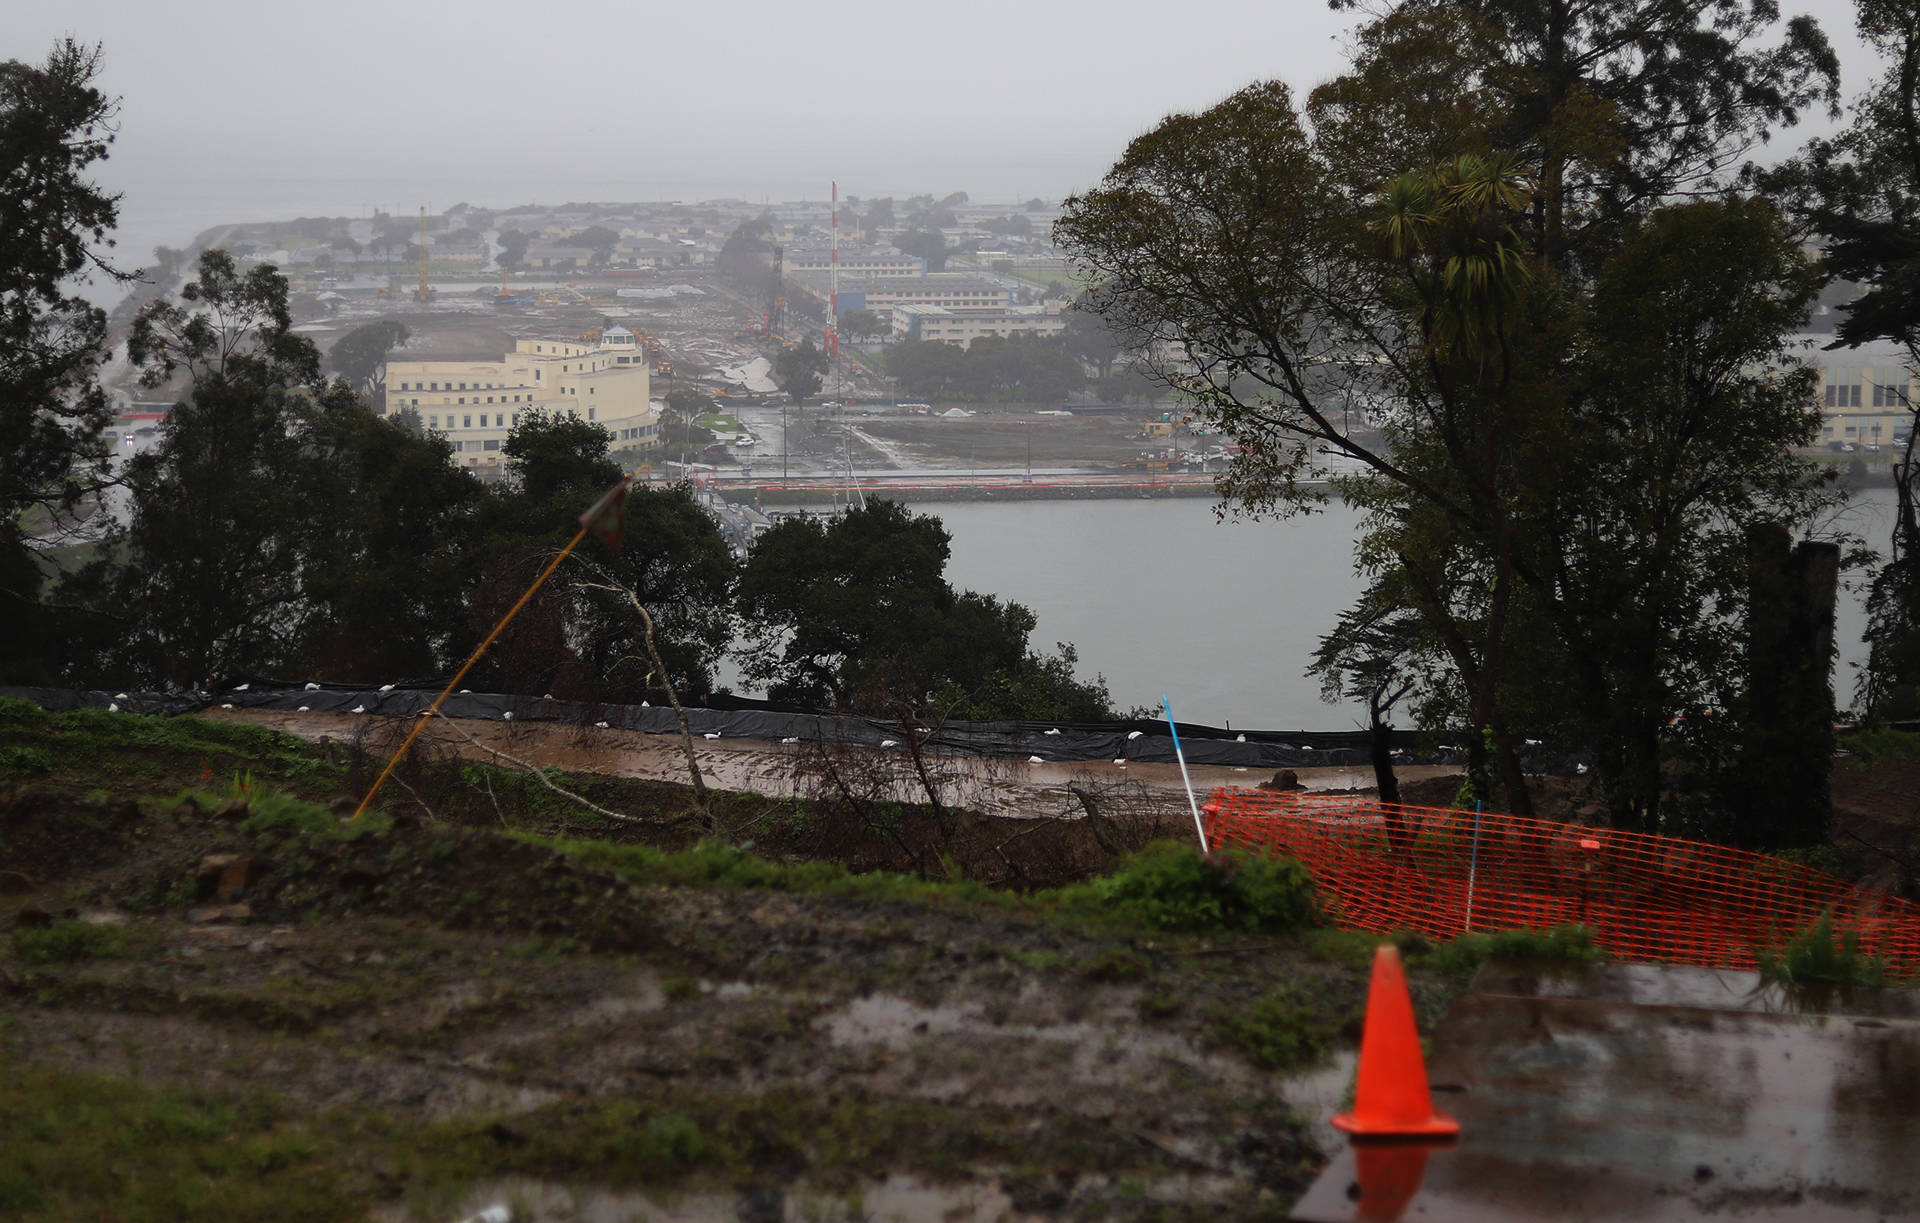 View of Treasure Island. The toxic compounds PFOS and PFOA, a type of PFAS, are present on the island at levels far beyond EPA guidelines. Lindsey Moore/KQED